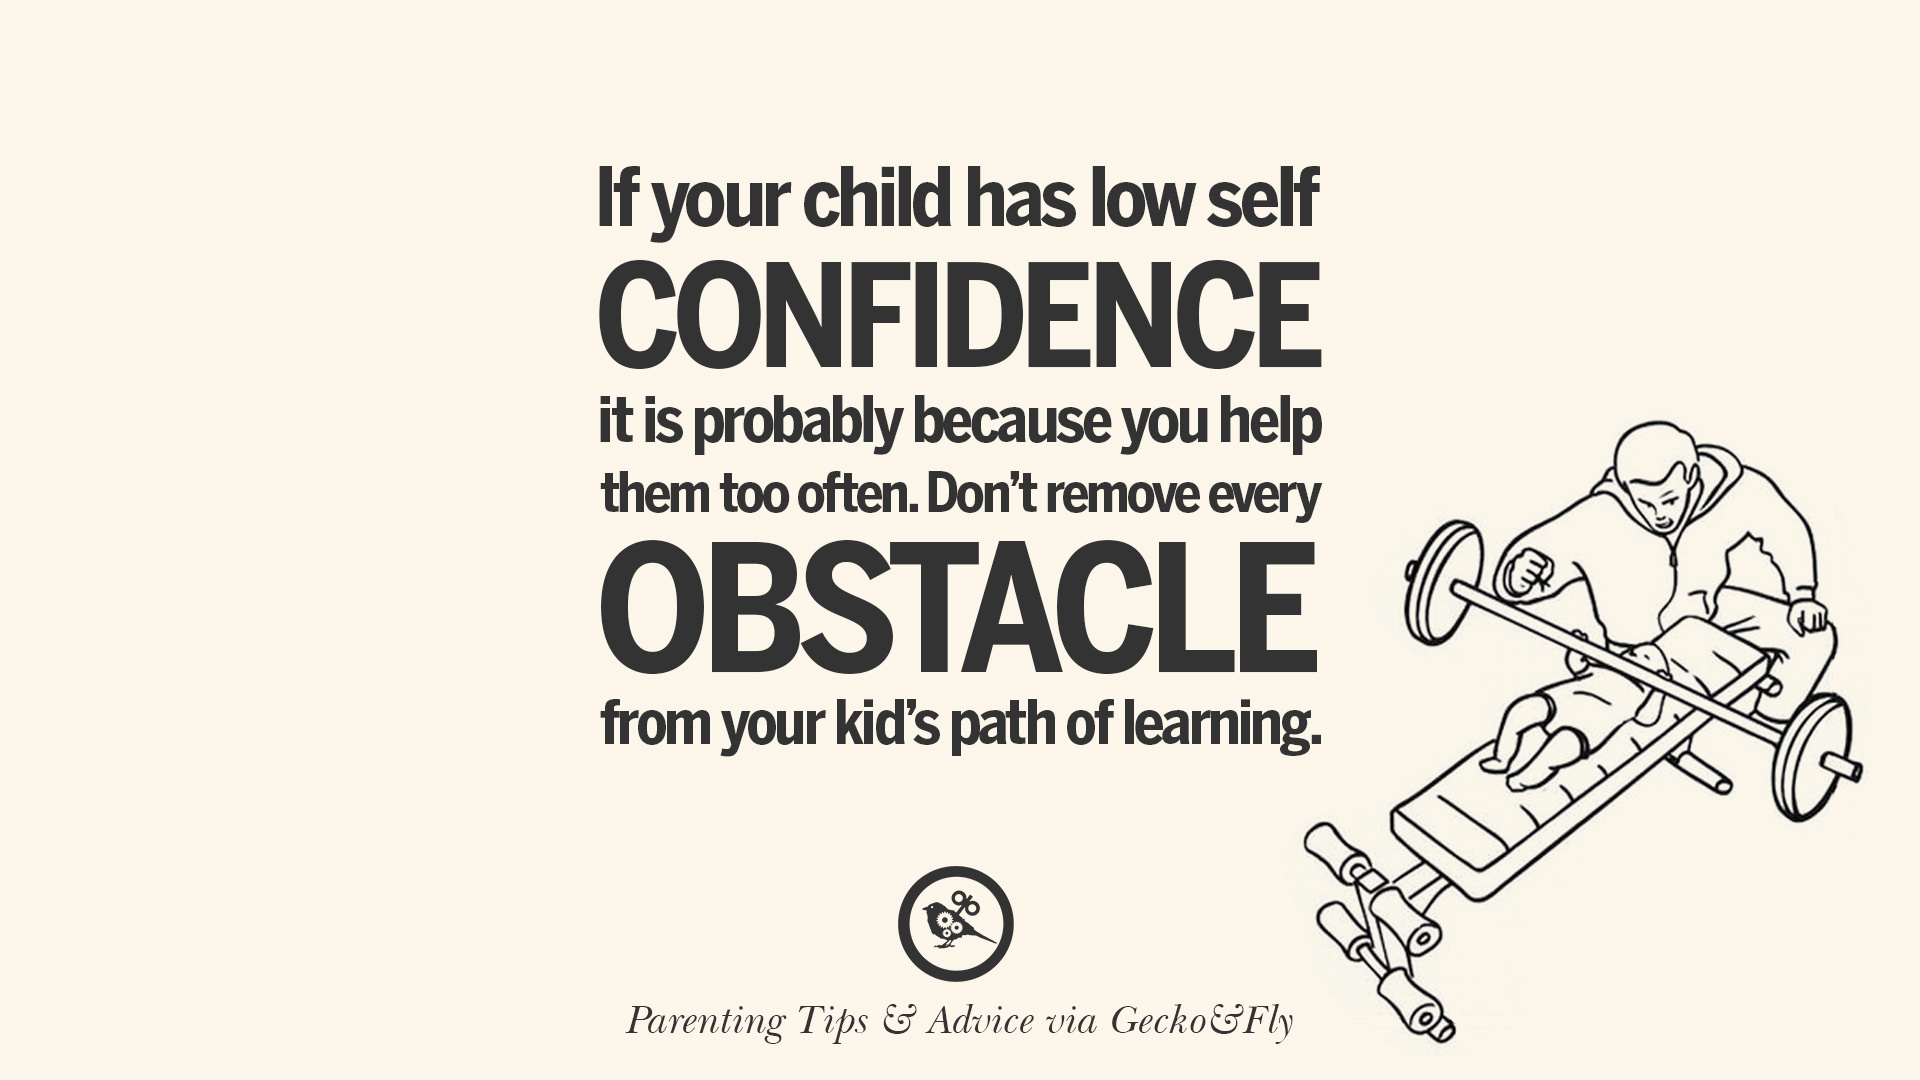 If You Child Has Low Self Confidence It Is Probably Because You Help Them  Too Often. Donu0027t Remove Every Obstacle From Your Kidu0027s Path Of Learning.